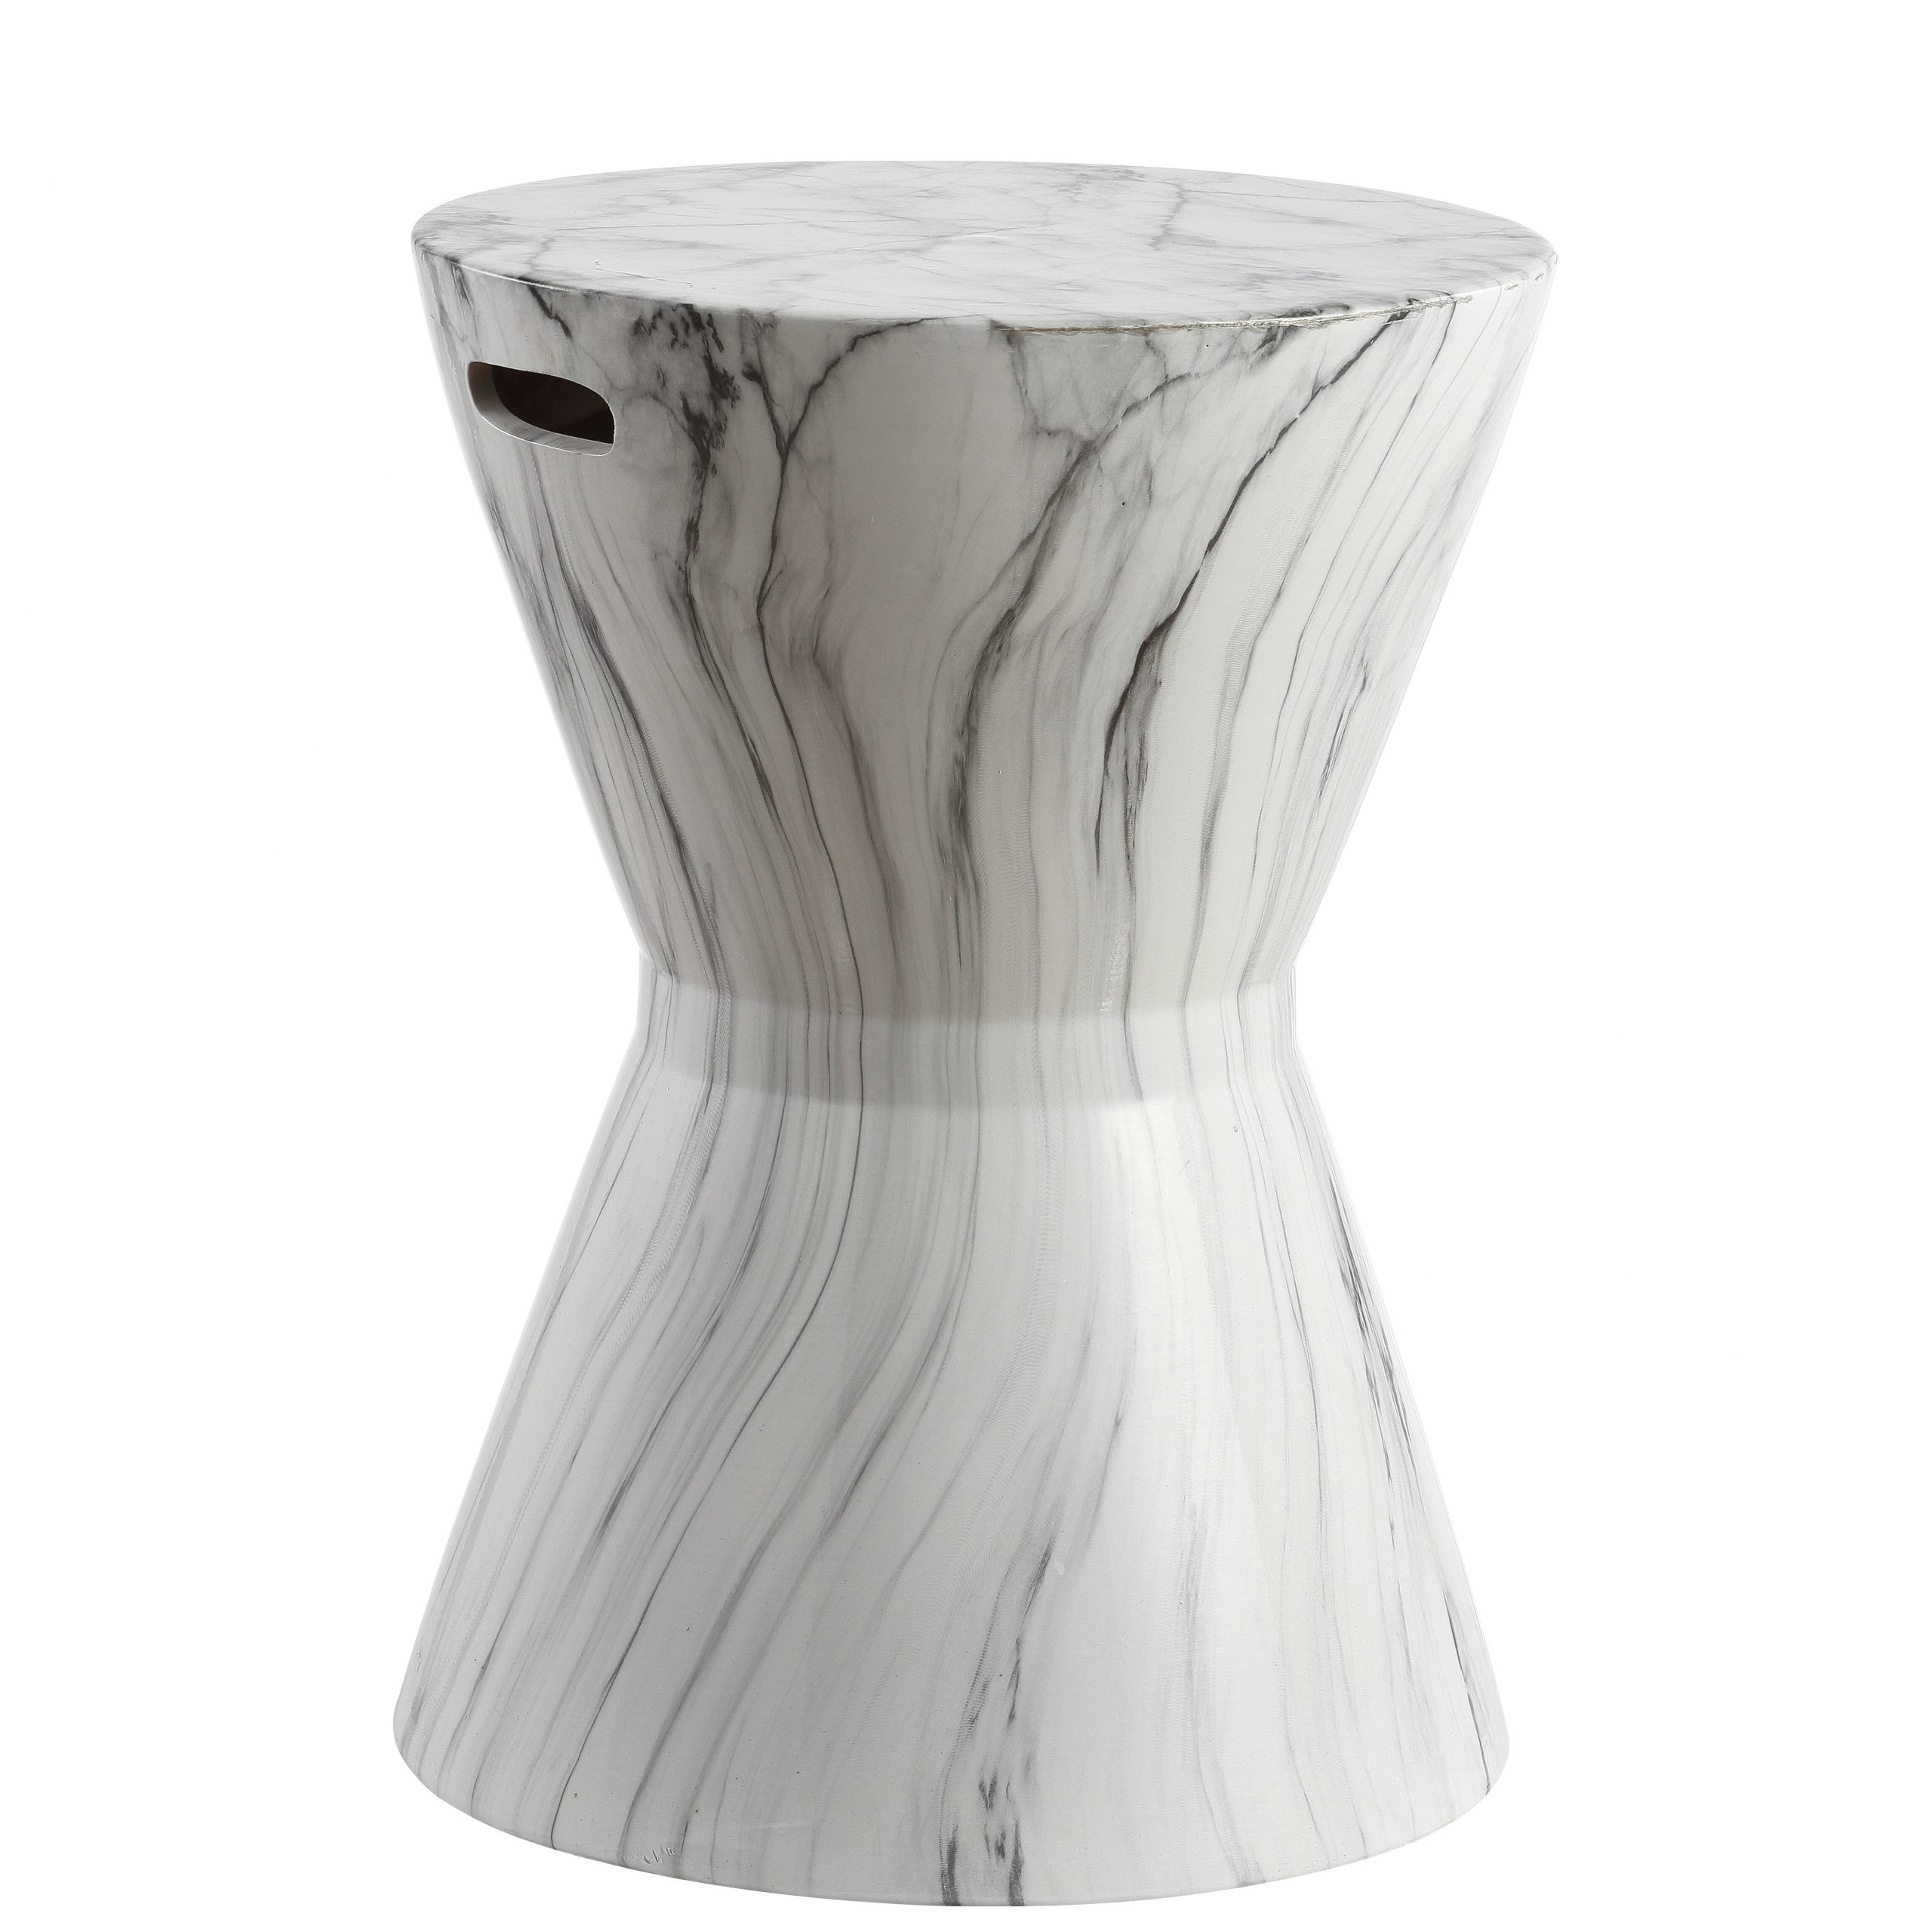 Bonville Ceramic Garden Stool With Regard To Bonville Ceramic Garden Stools (View 2 of 25)